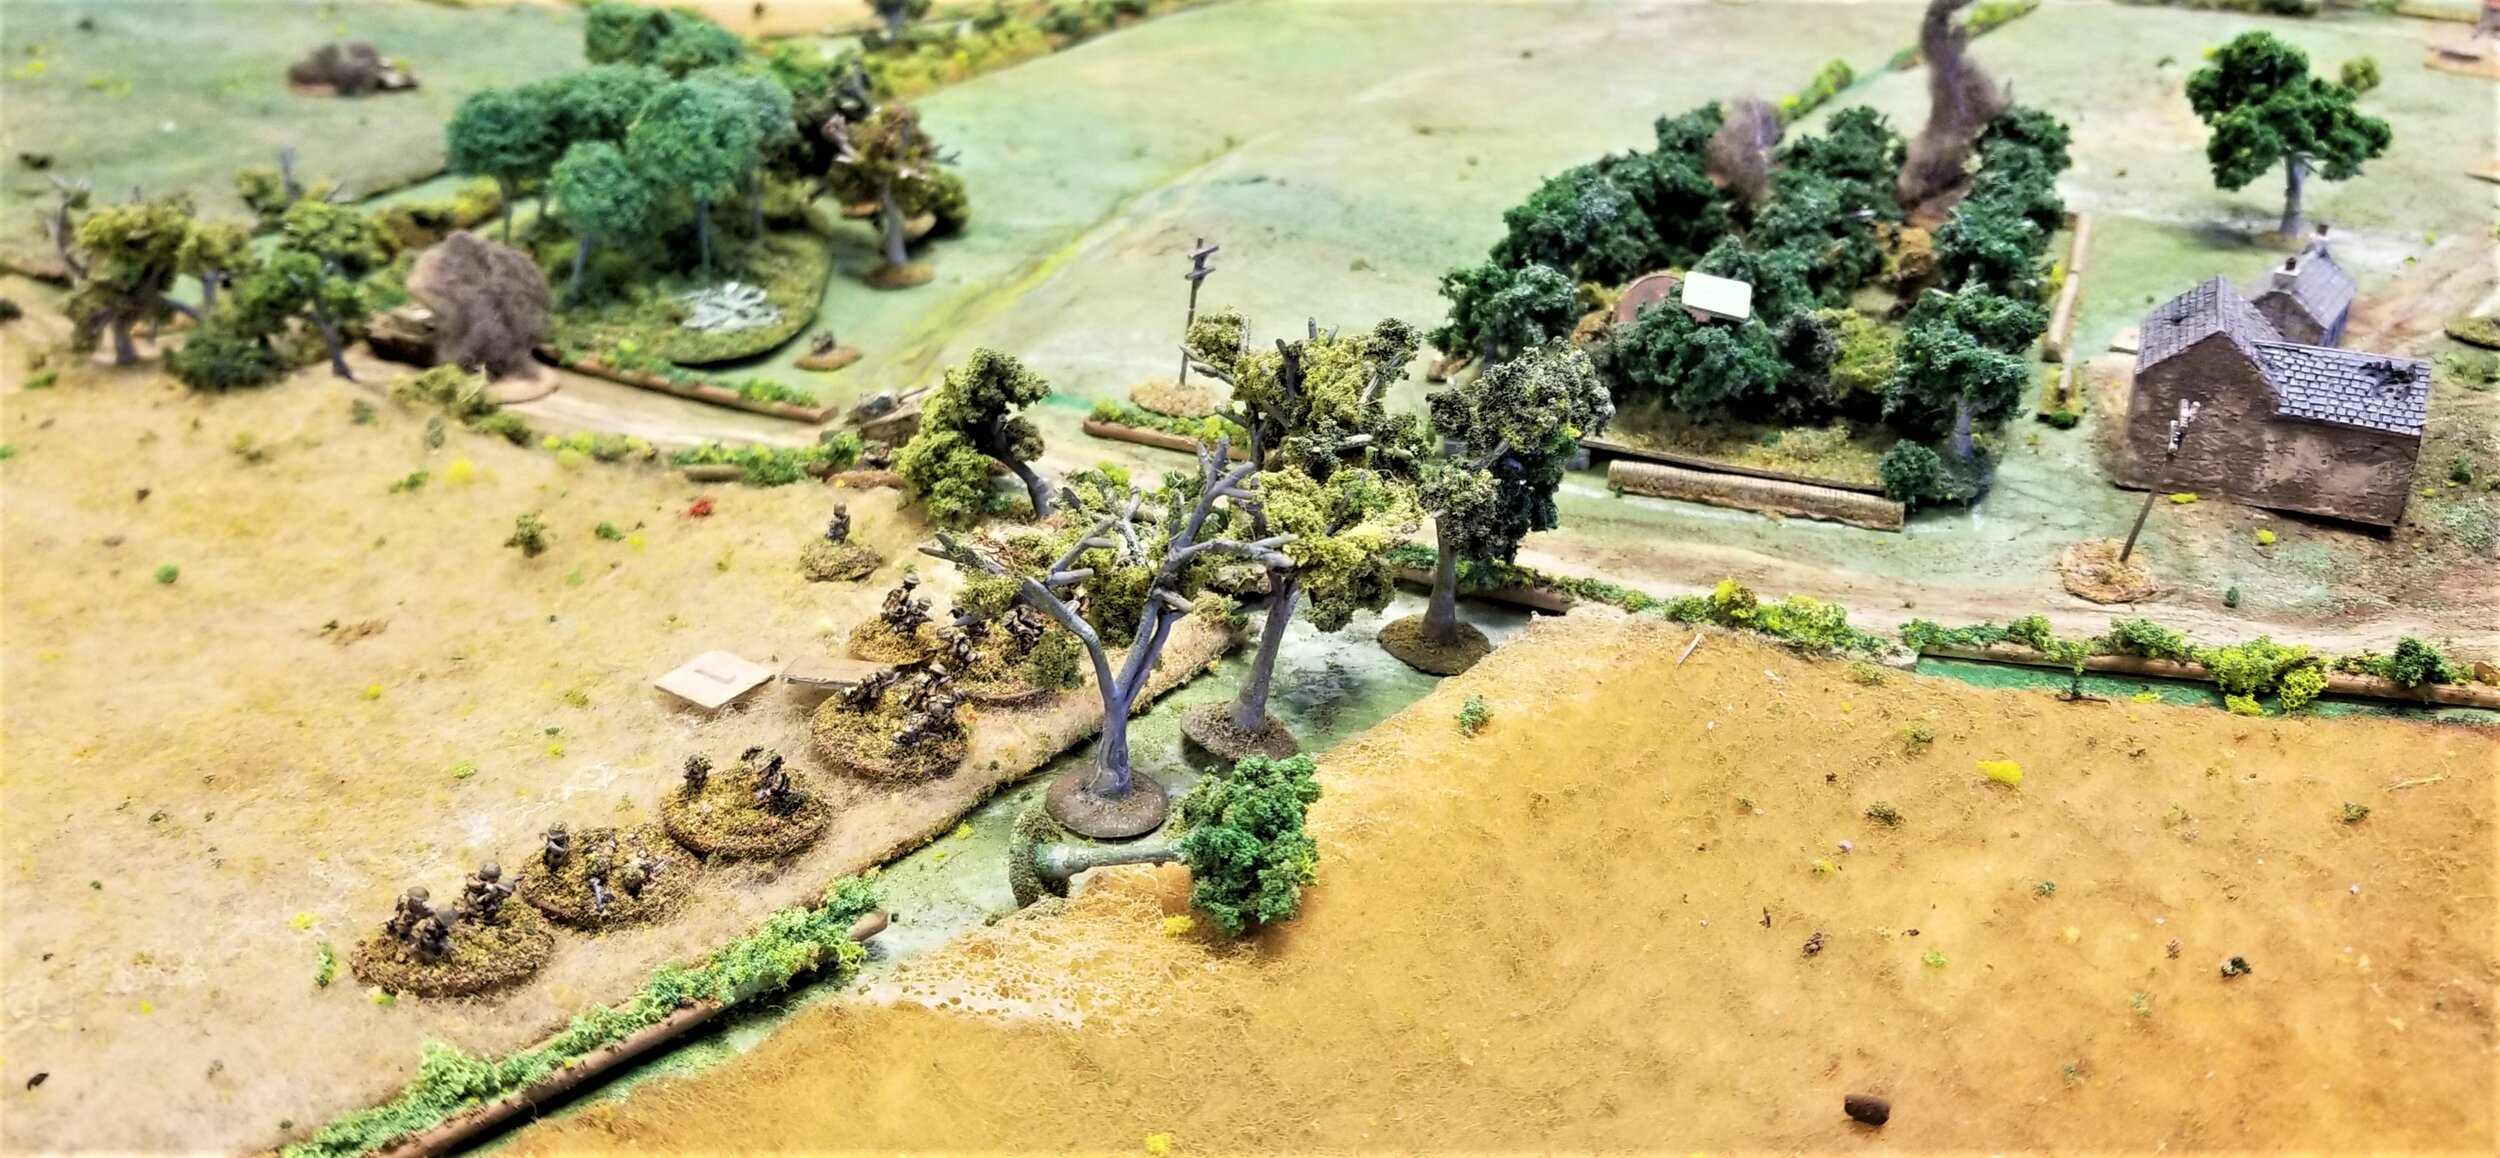 Furtherest advance of the Welsh